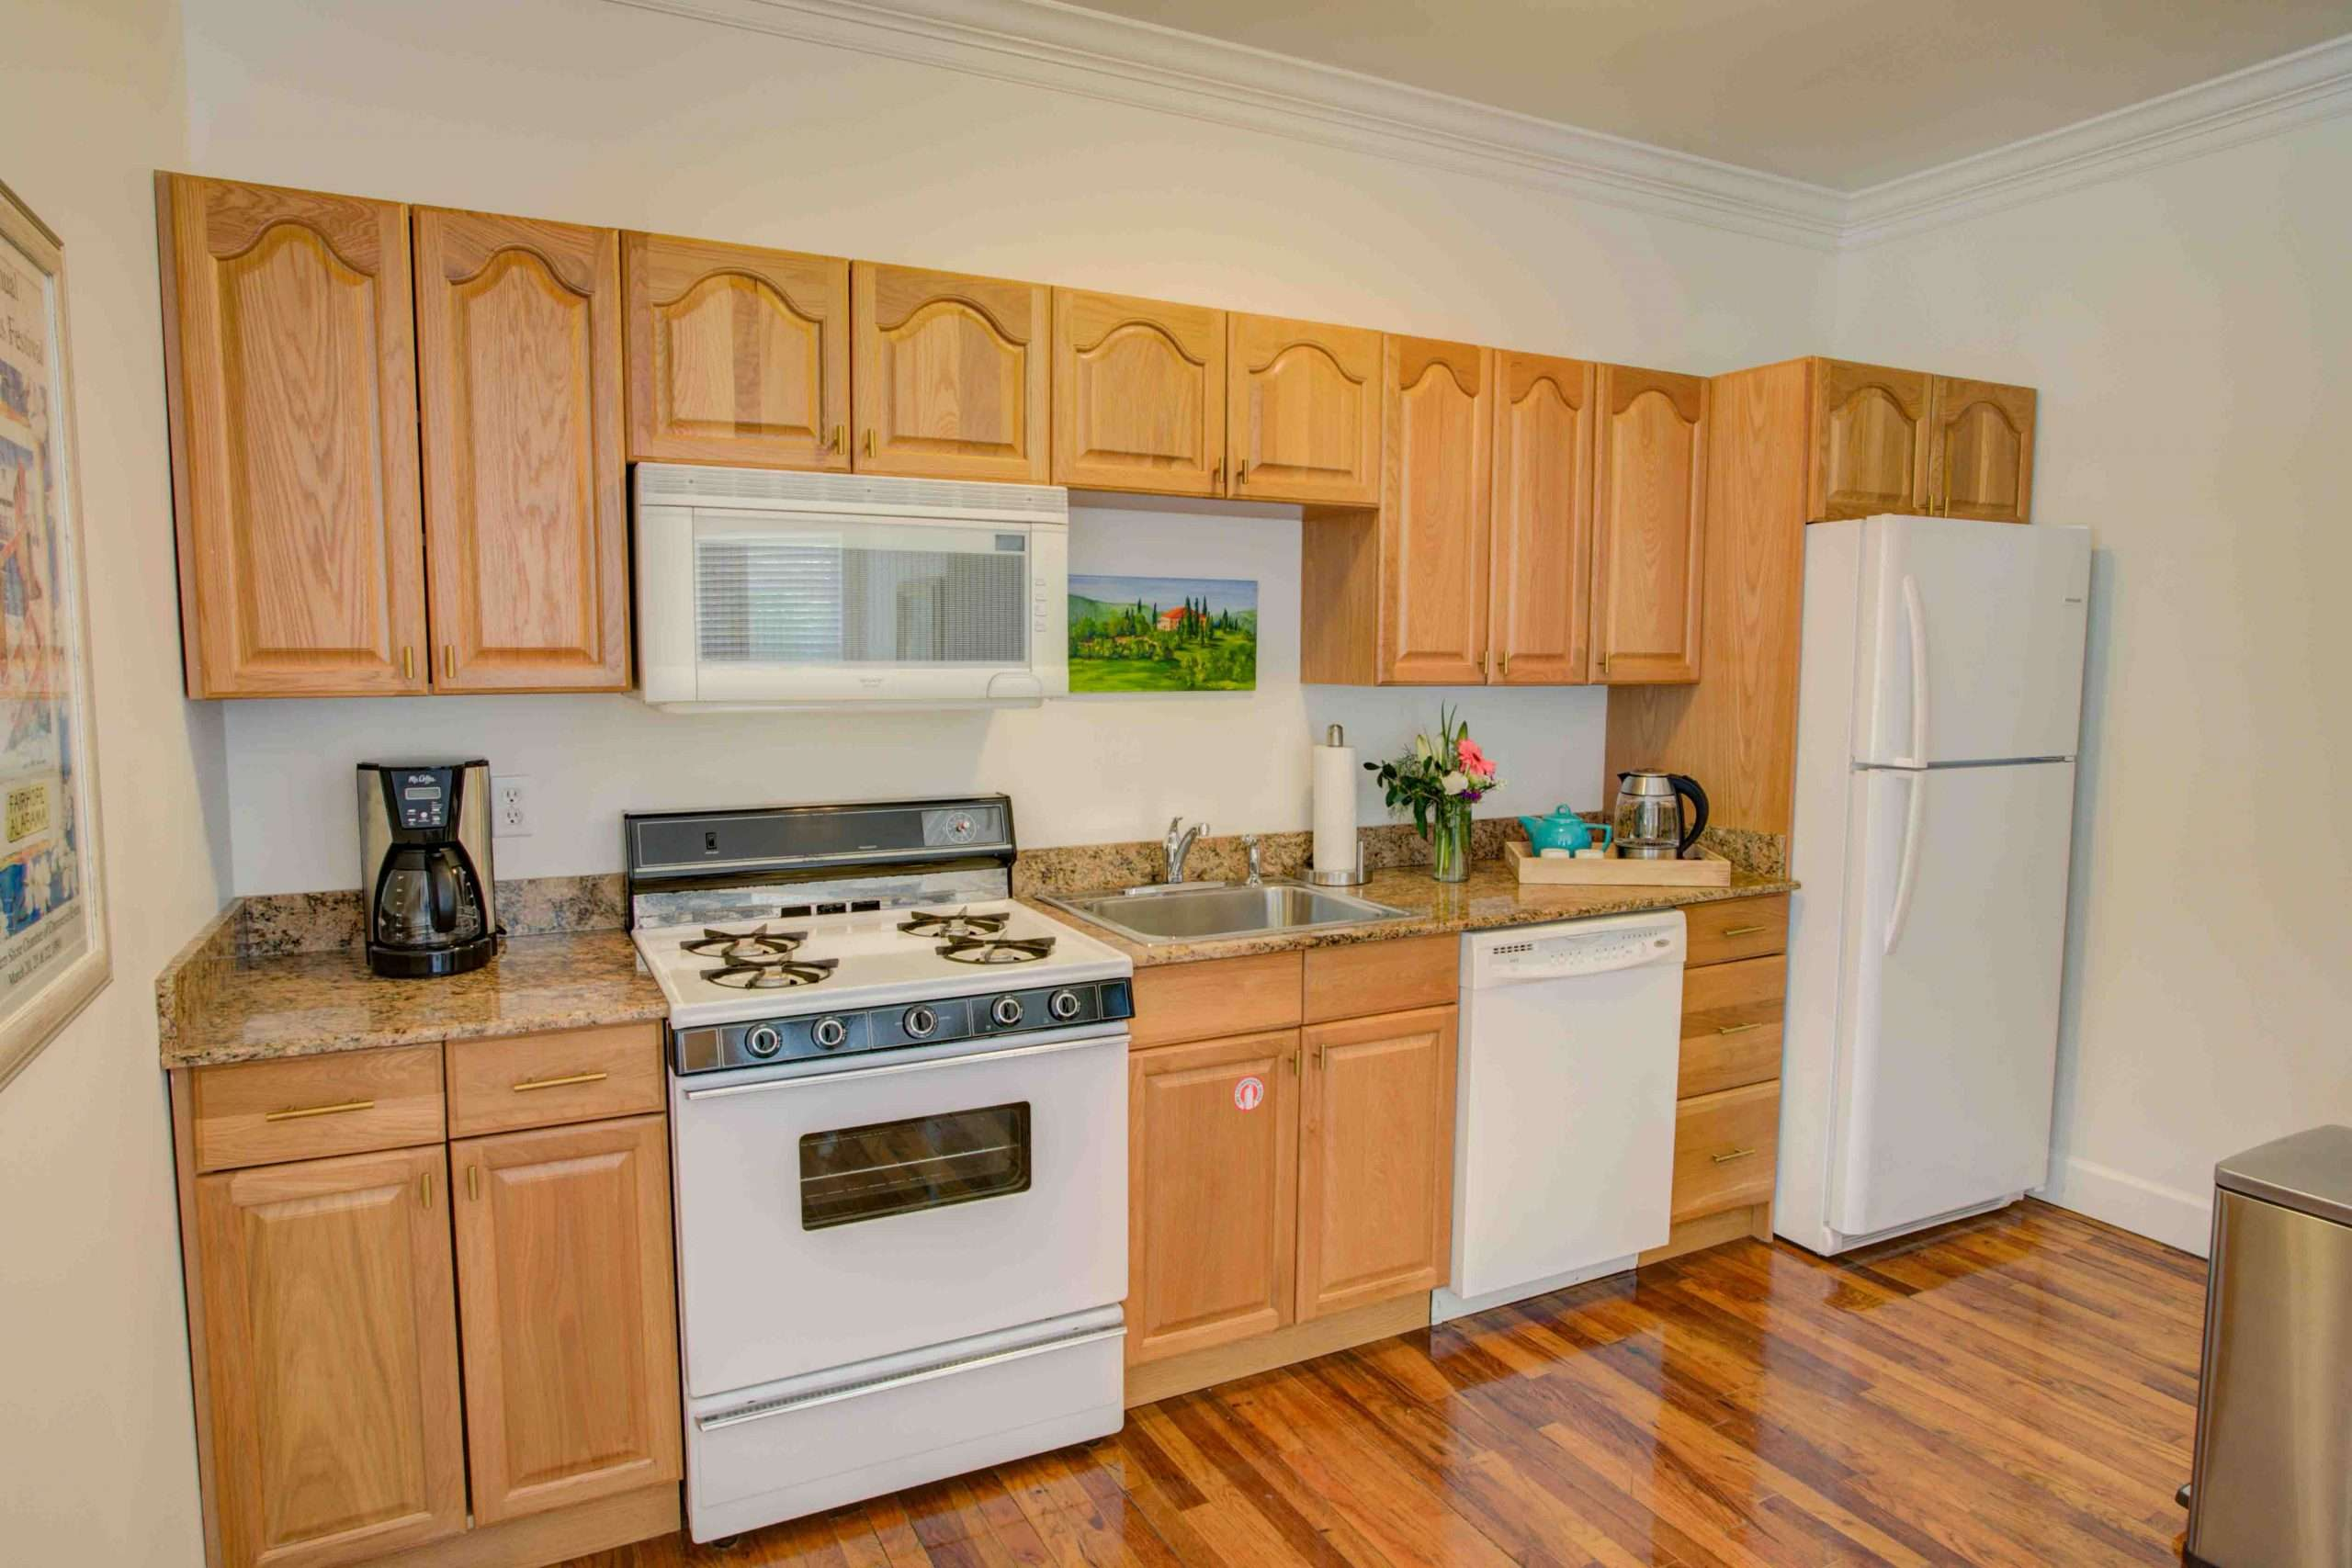 Charlotte Kitchen Jubilee Suites in Fairhope, AL